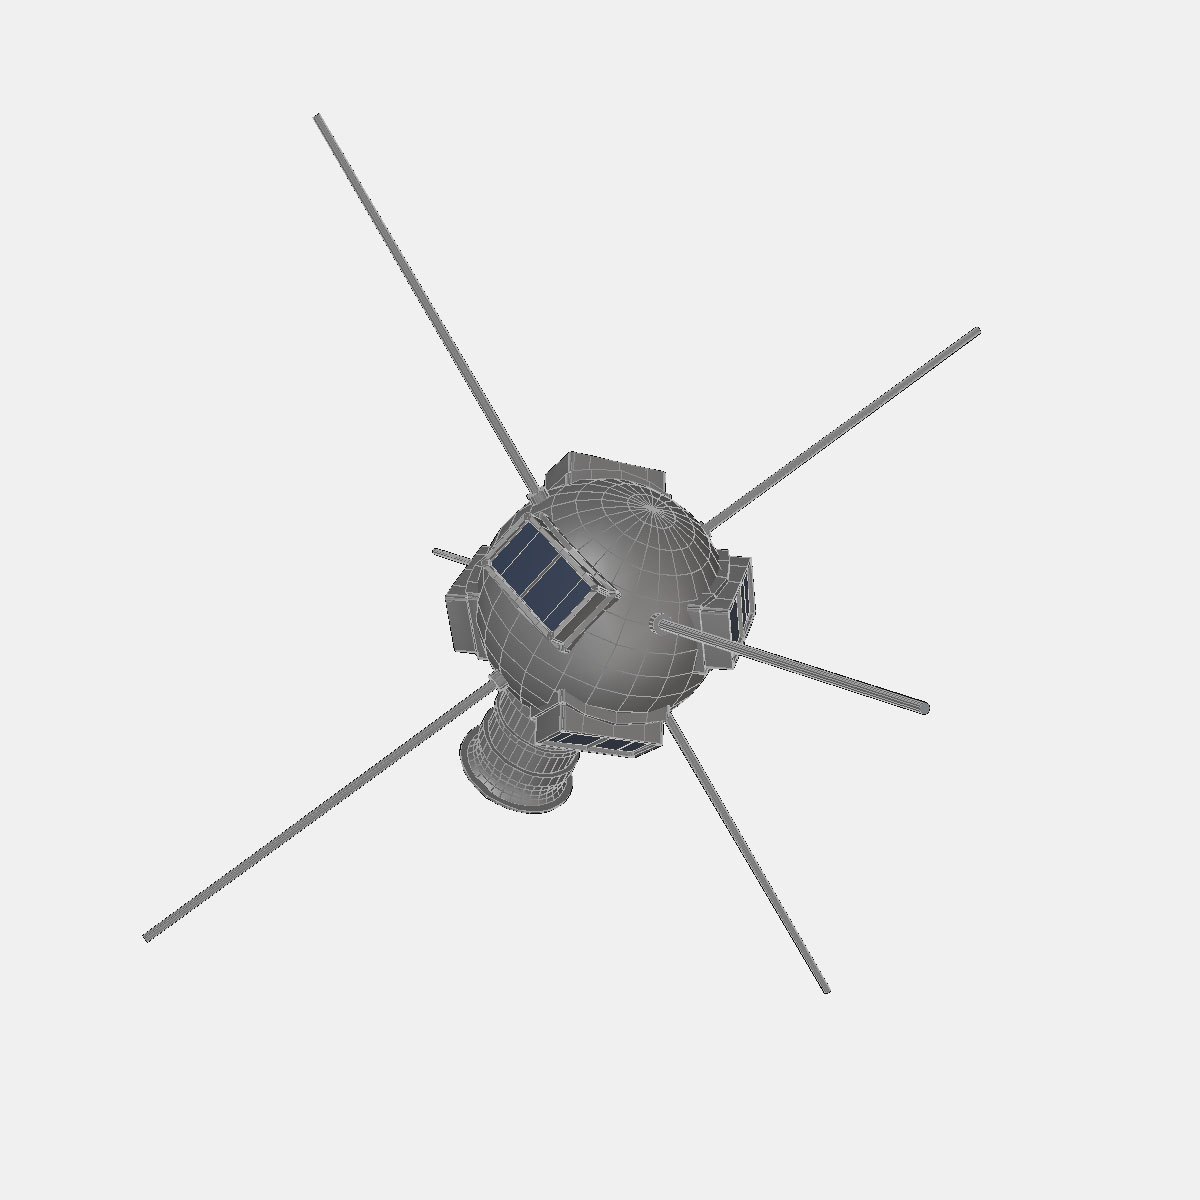 Vanguard I Satellite 3d model 3ds dxf fbx blend cob dae X obj 163931